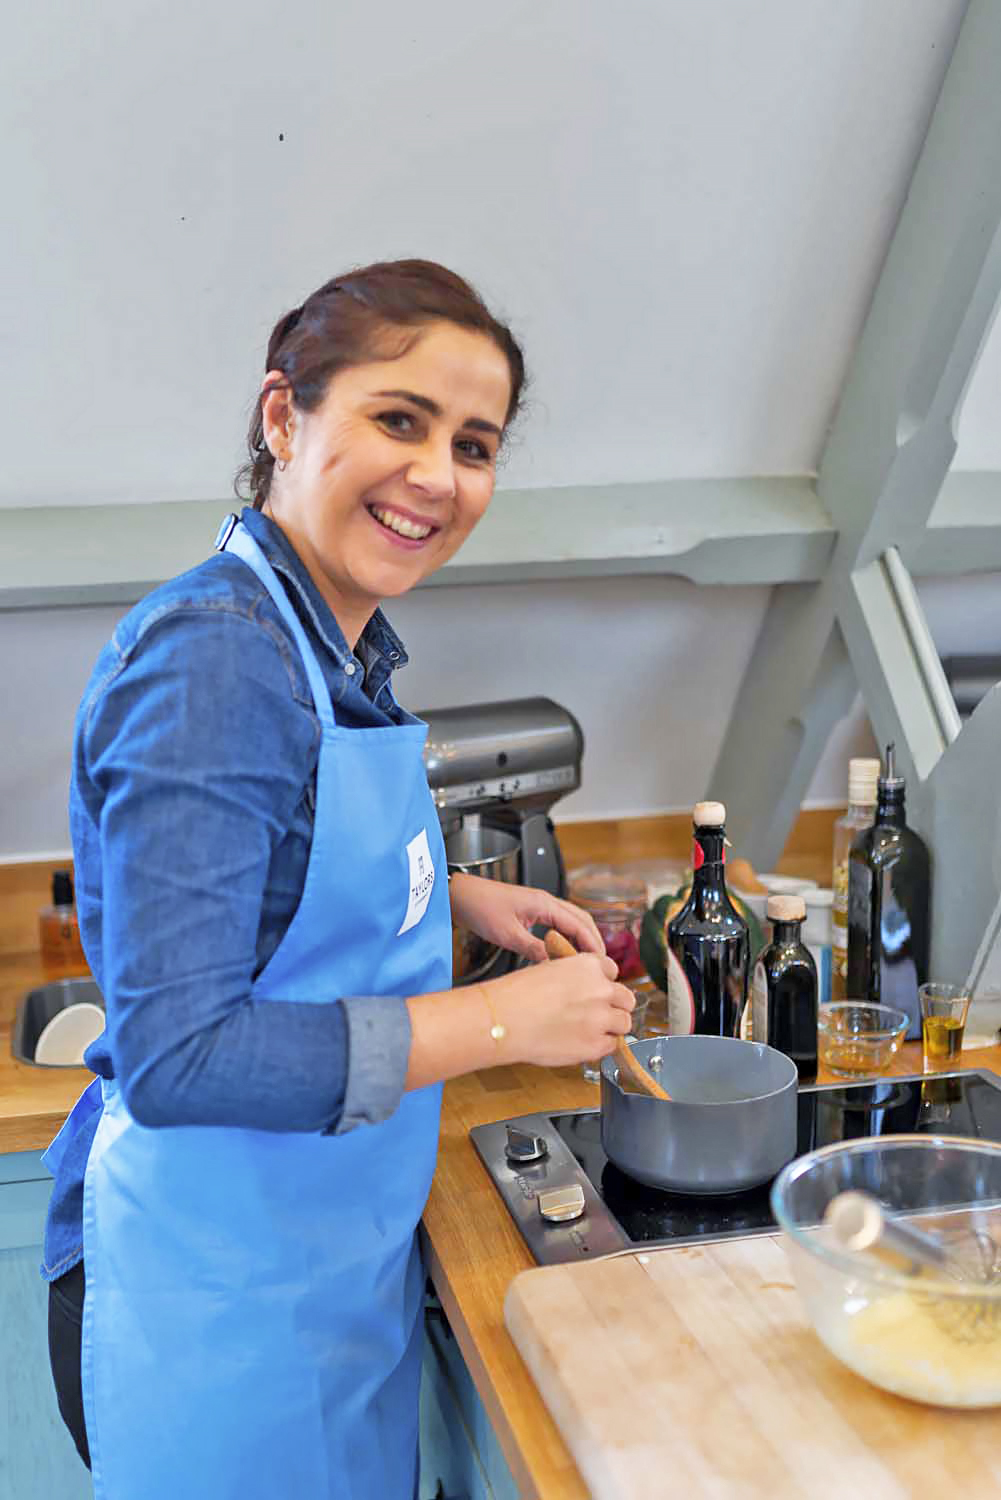 Giulia Mulè at a Cooking Workshop at Cactus Kitchen in London